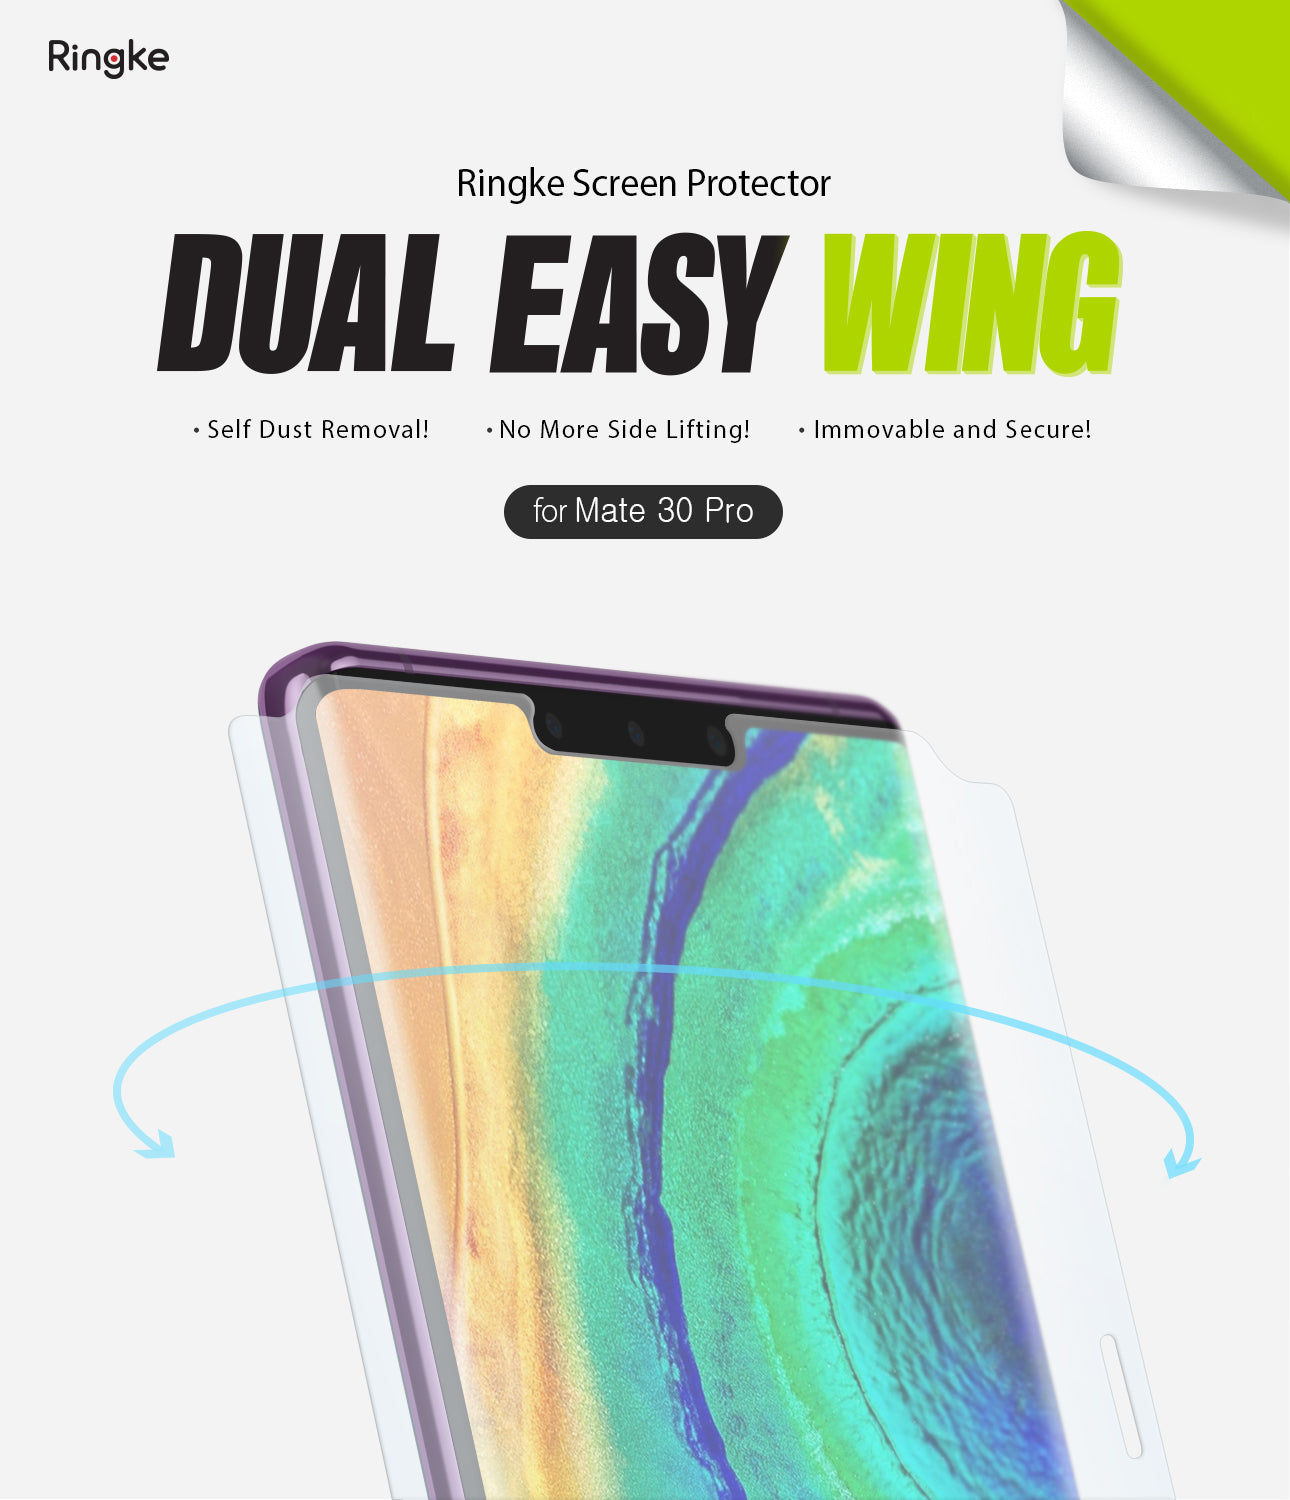 Huawei Mate 30 Pro Screen Protector | Dual Easy Film